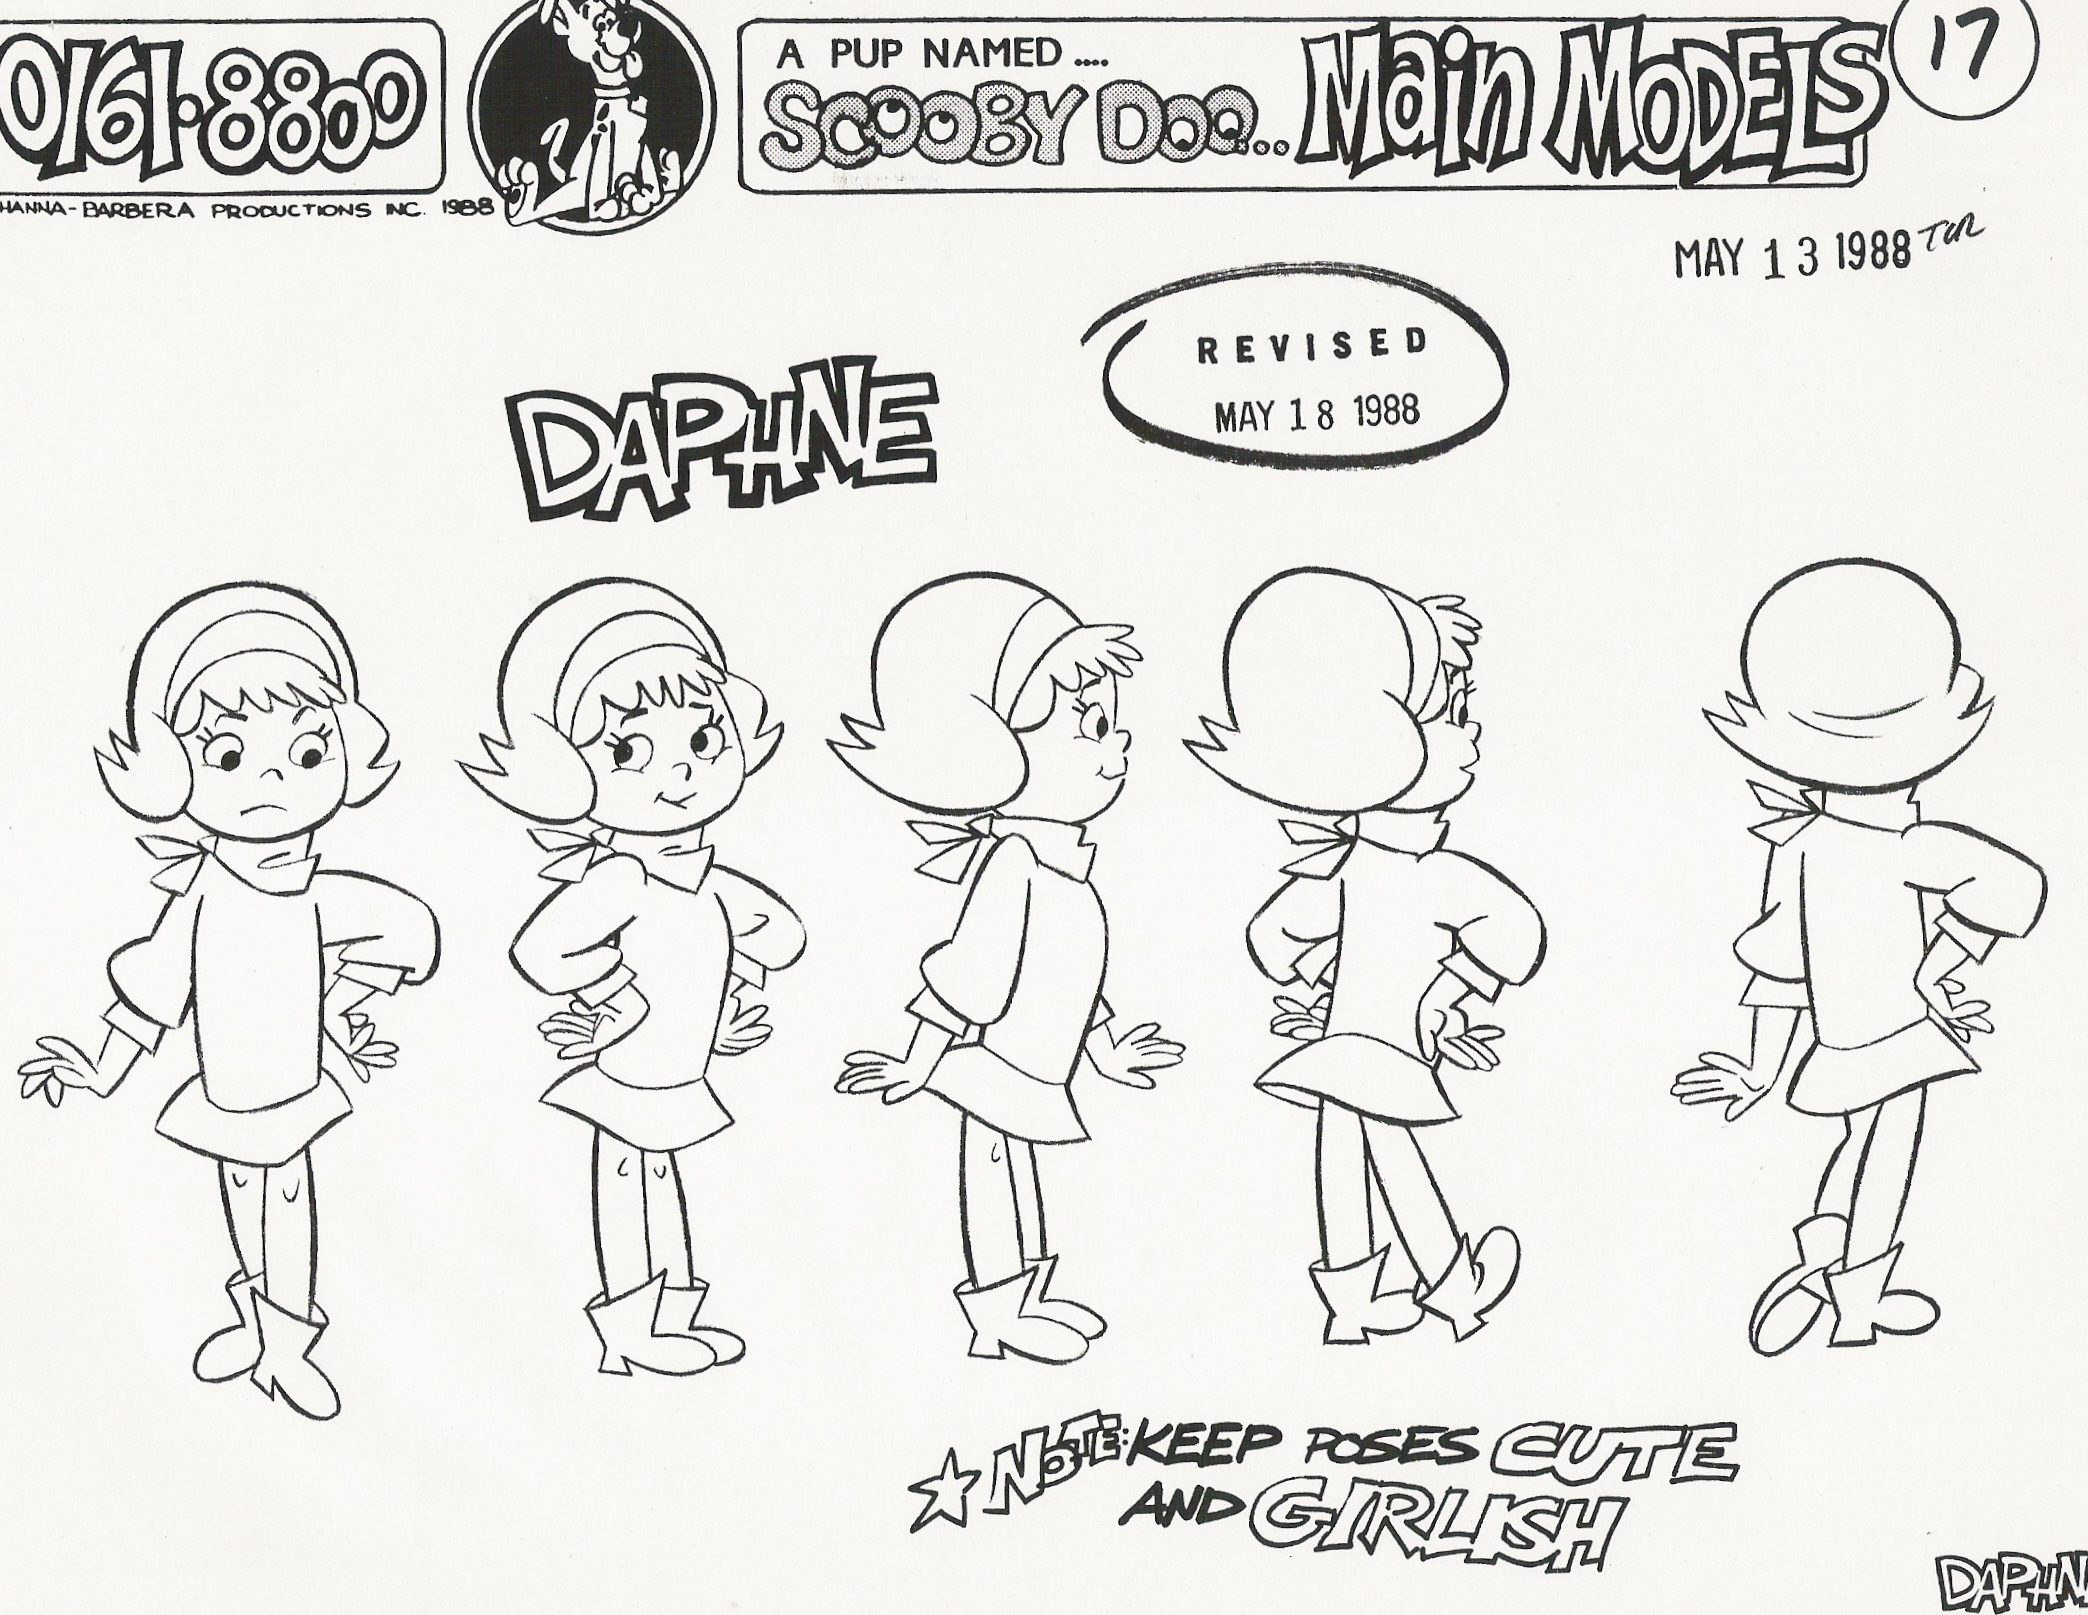 scooby_doo | High quality Pup Named Scooby Doo model sheets!